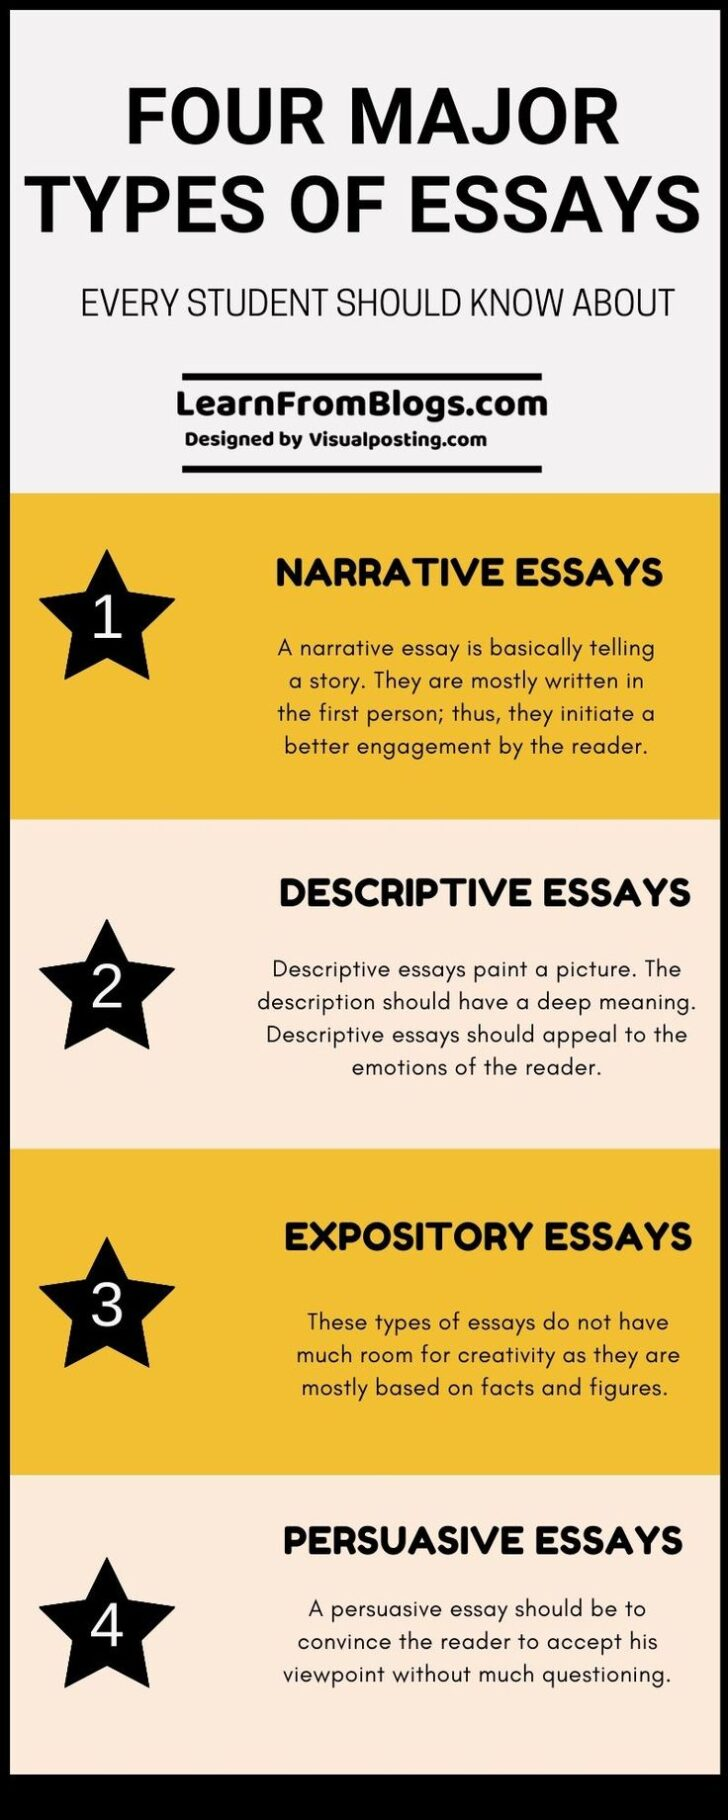 What Are The 4 Types Of Essay